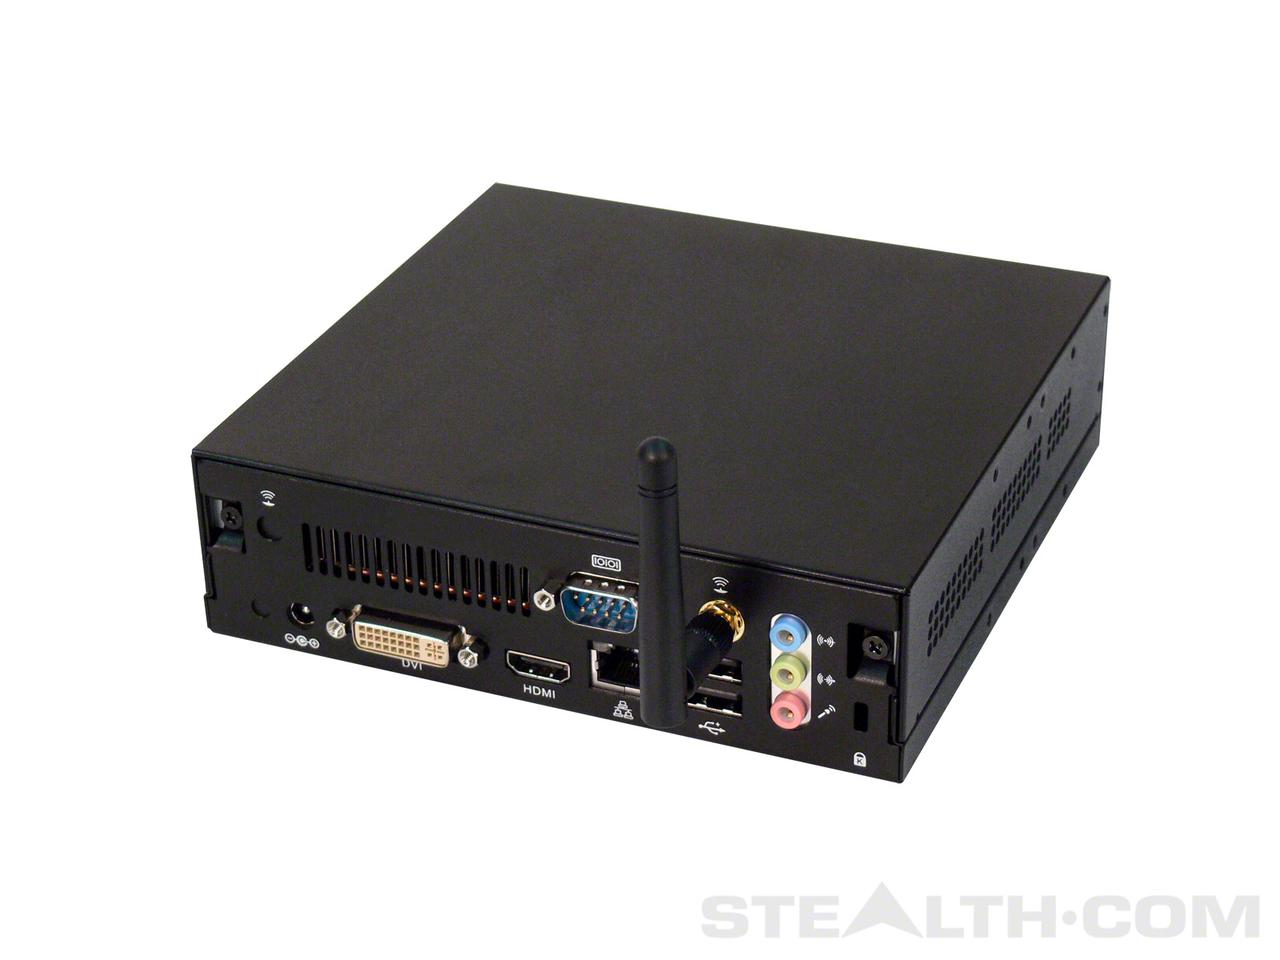 The LPC-670 connectivity options include Gigabit LAN, an optional Wi-Fi 802.11g card and antenna, four USB 2.0 ports, RS232 COM port, DVI-I video connector, audio in and out, and a HDMI port